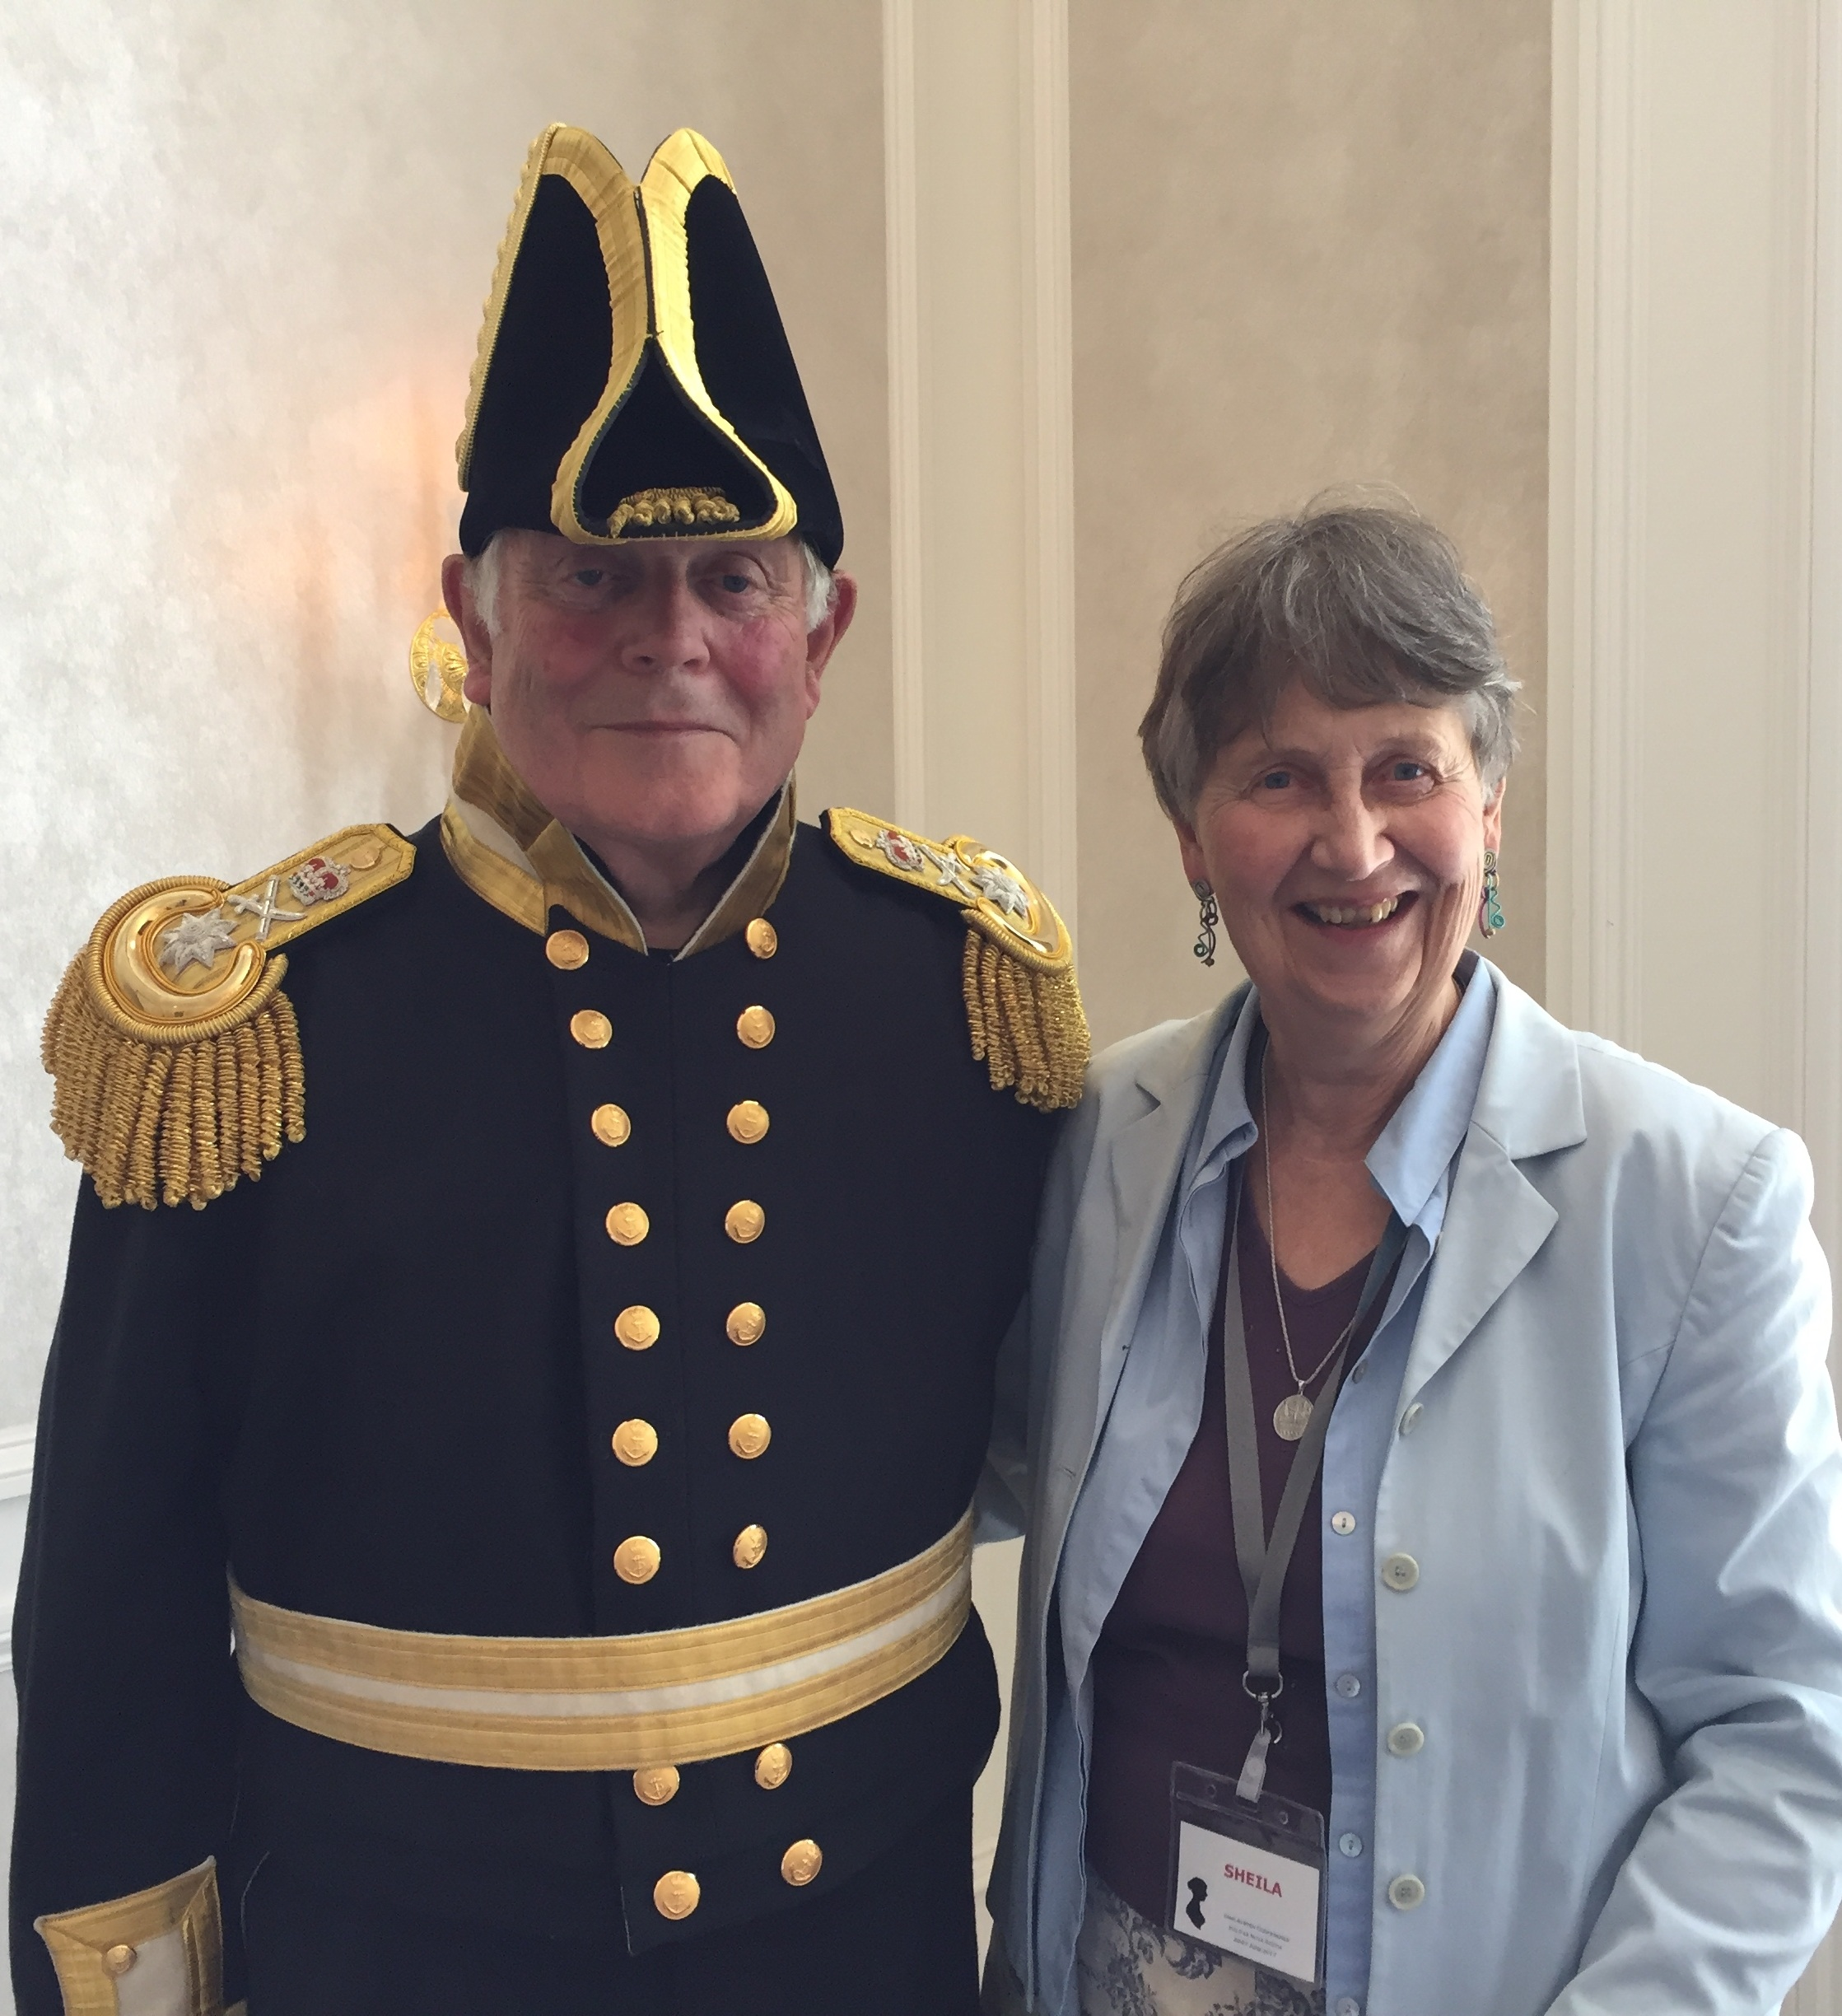 Sheila with Patrick Stokes, direct descendent of Charles Austen